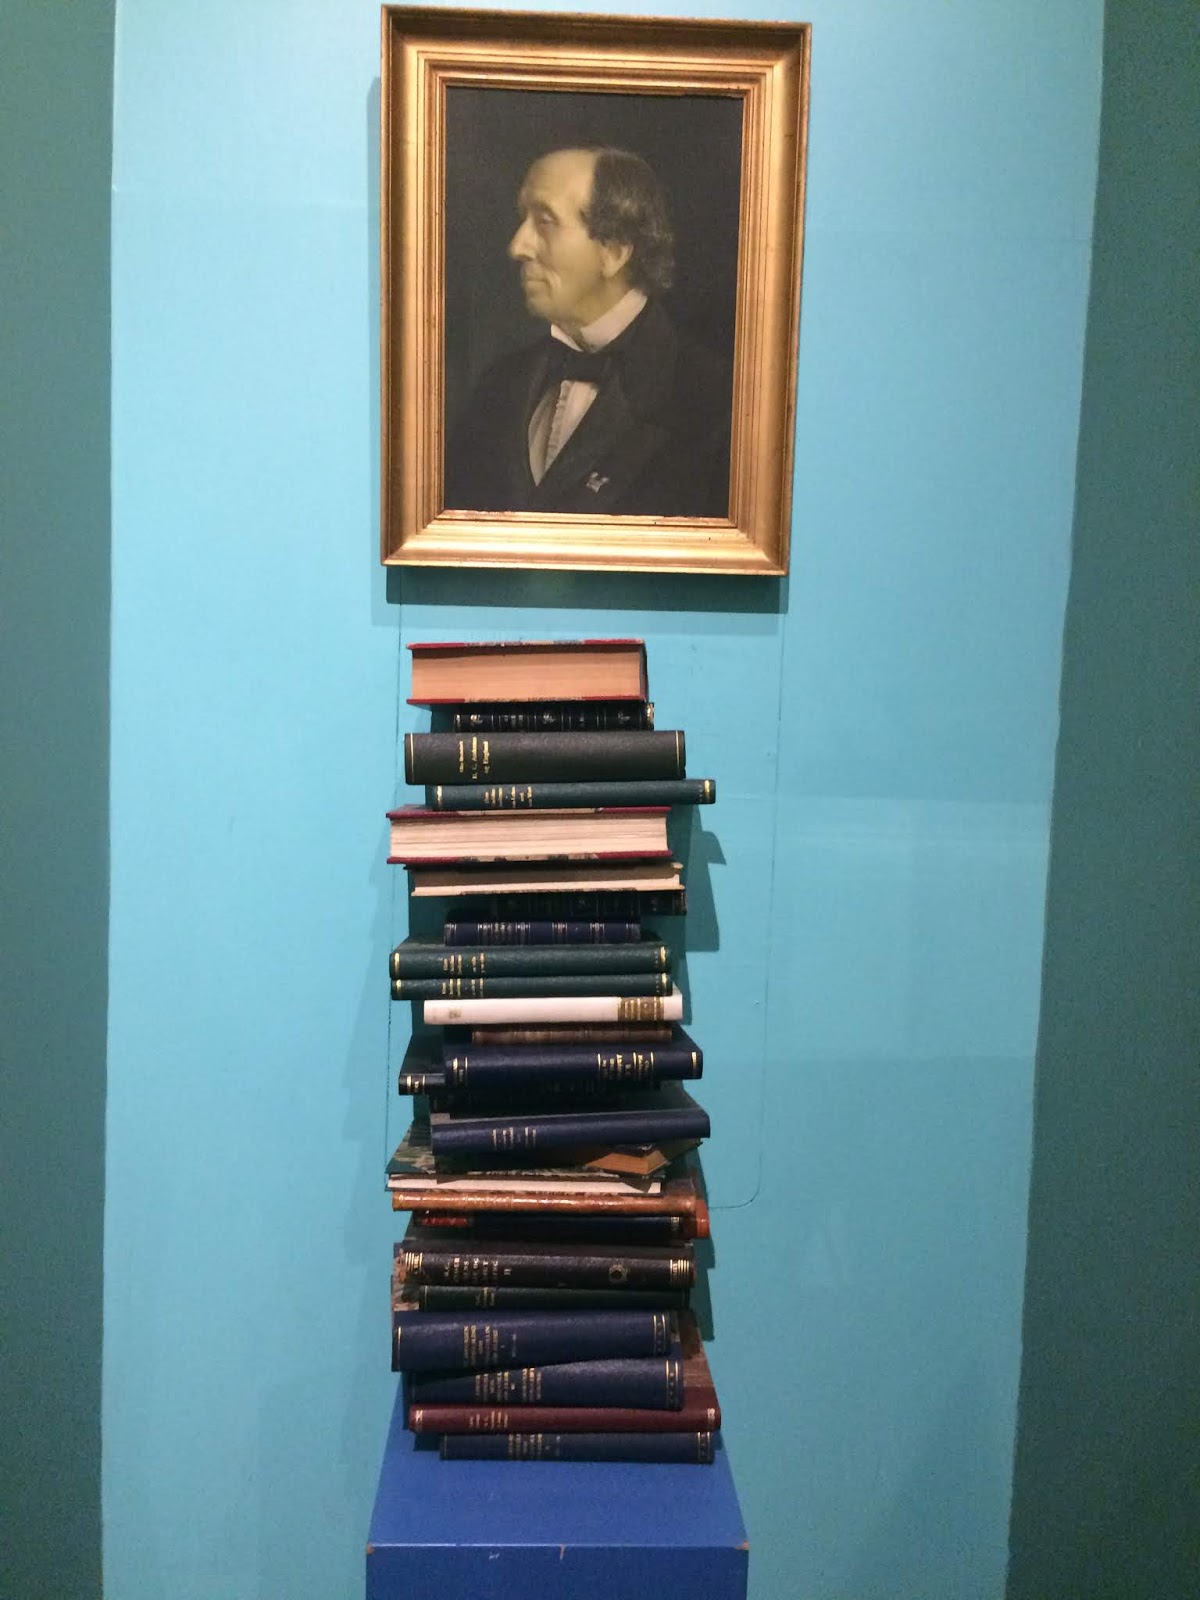 Portrait of Hans Christian Andersen above a stack of old editions of his fairy tales in Danish